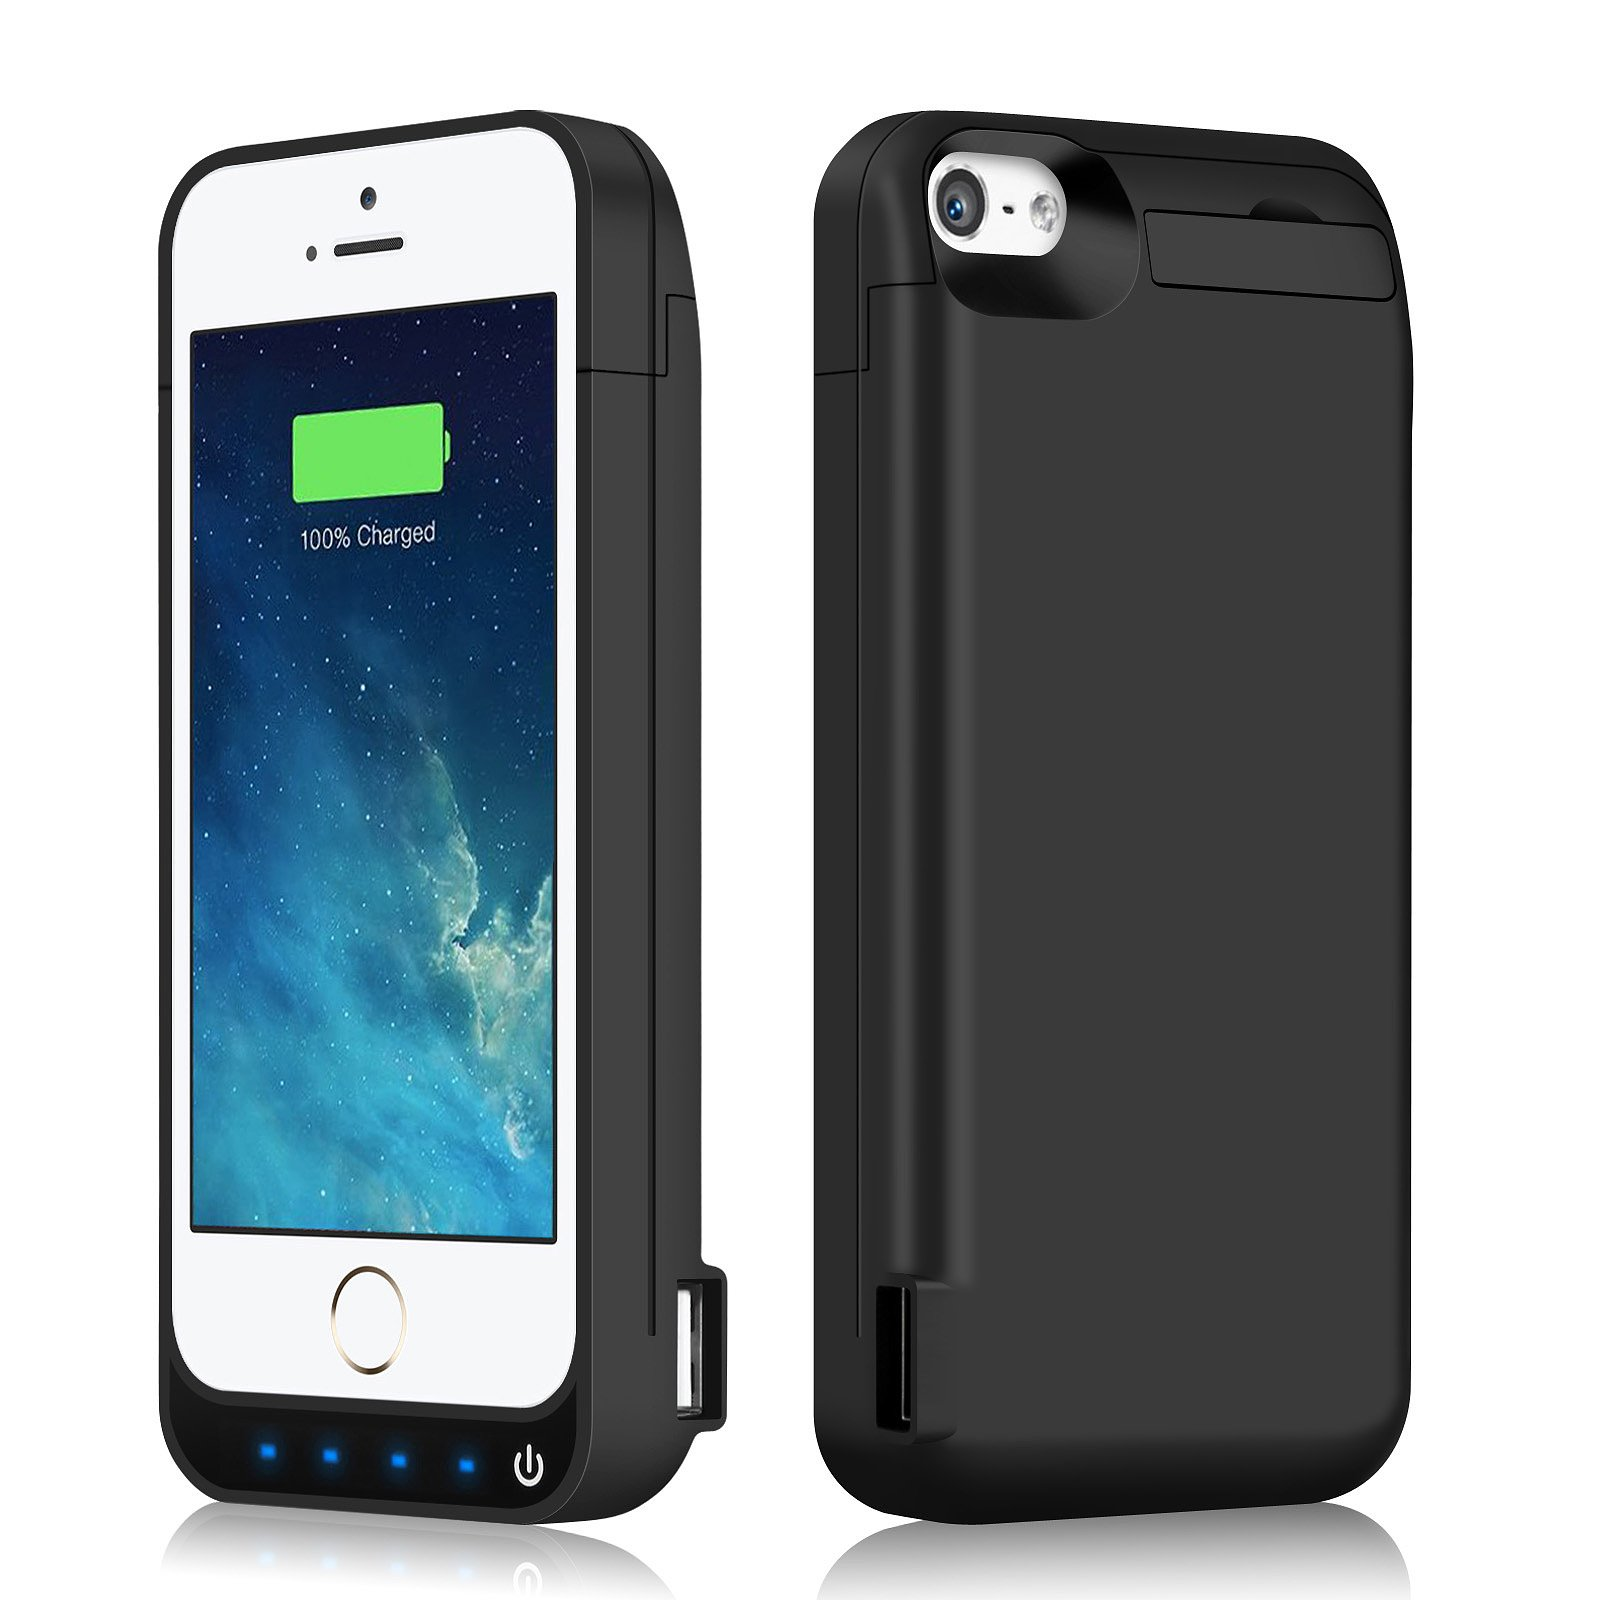 iPhone 5/5S/5C/SE Battery Case iPosible 4500mAh External Rechargeable Charger Case for iPhone 5/5S/5C/SE Charging Case Power Bank Battery Pack [24 Month Warranty]